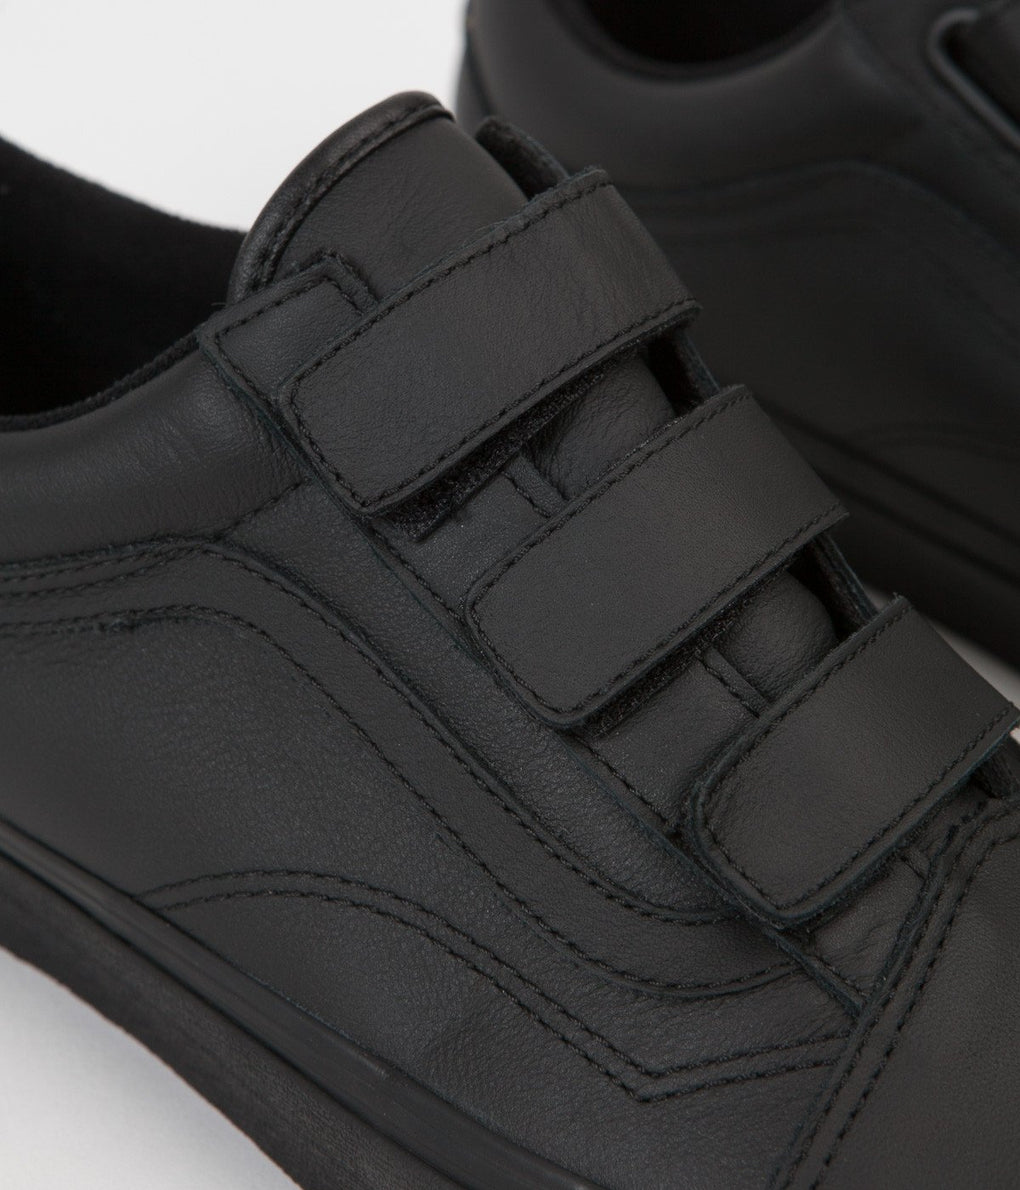 Vans Old Skool V Mono Leather Shoes - Black